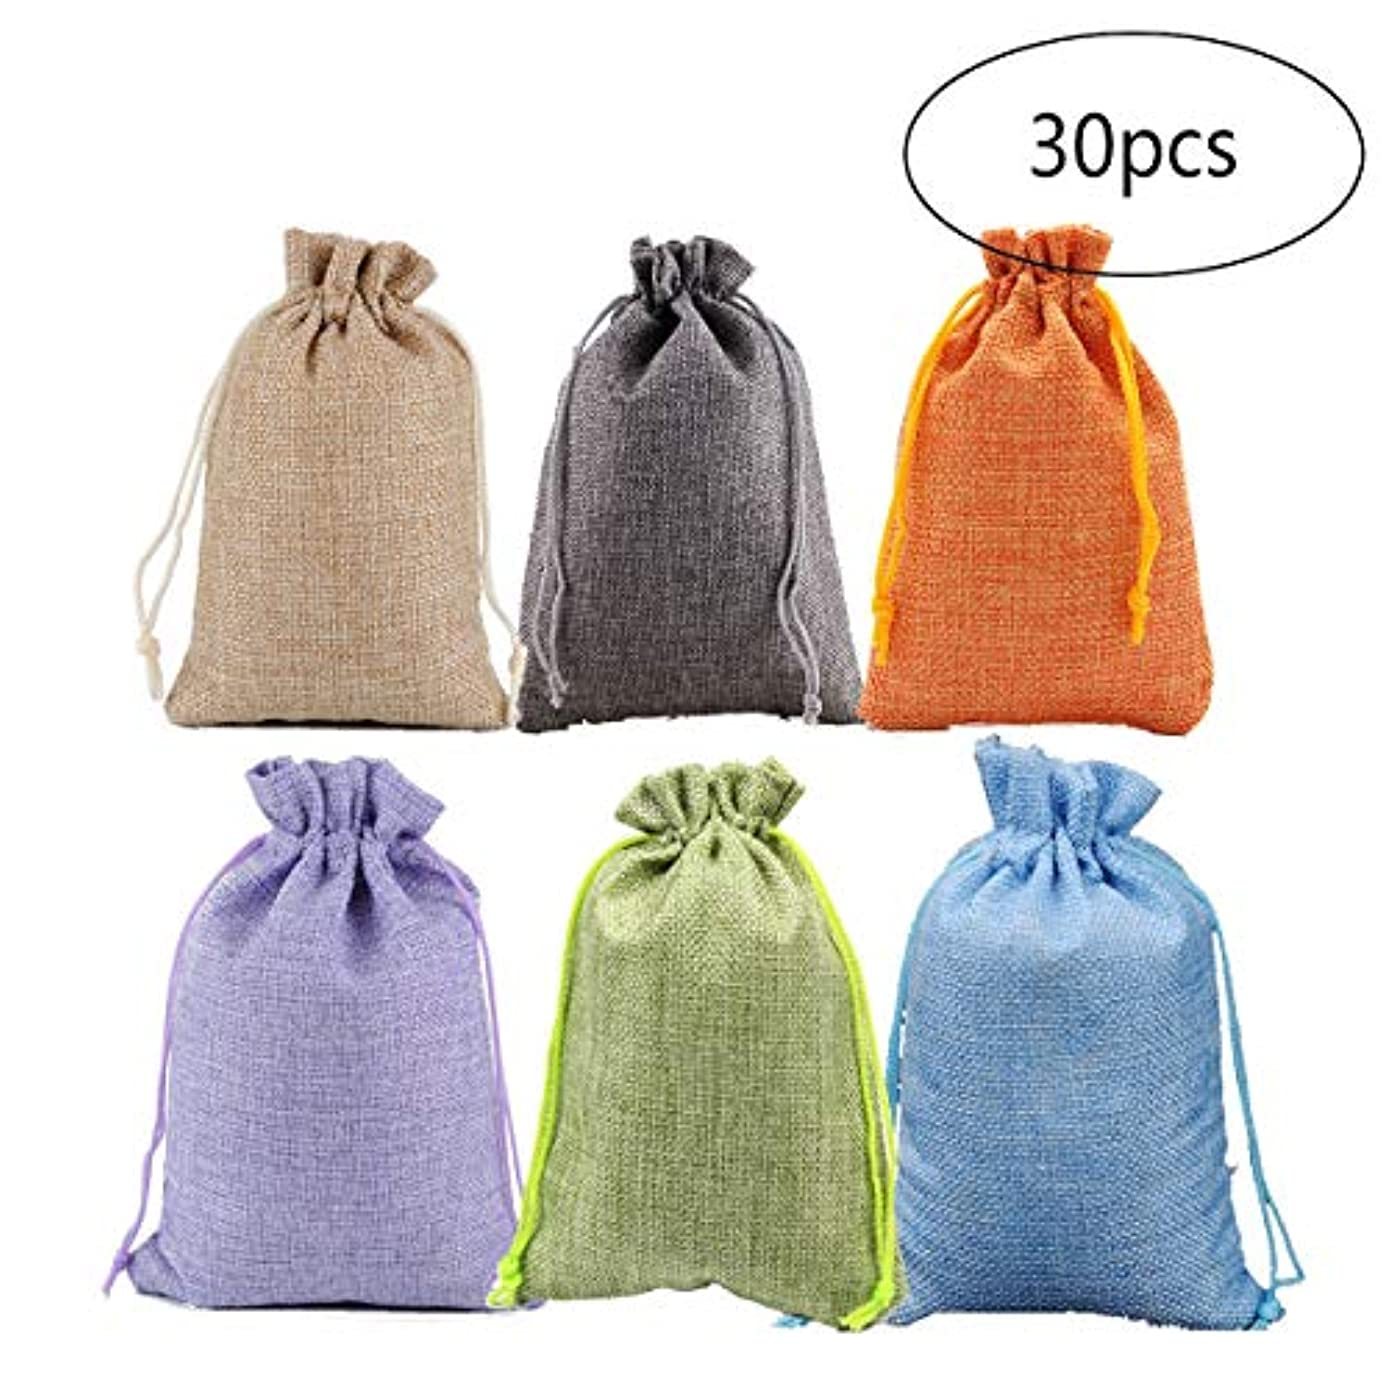 JKJF 6 Mixed Burlap Bags, Gift Bags for Wedding Party, Jewelry Pouch, Candy Pouch Christmas, 3.7 x 5.3 Inch, with Drawstring (30 Pcs, Each Color 5Pcs)